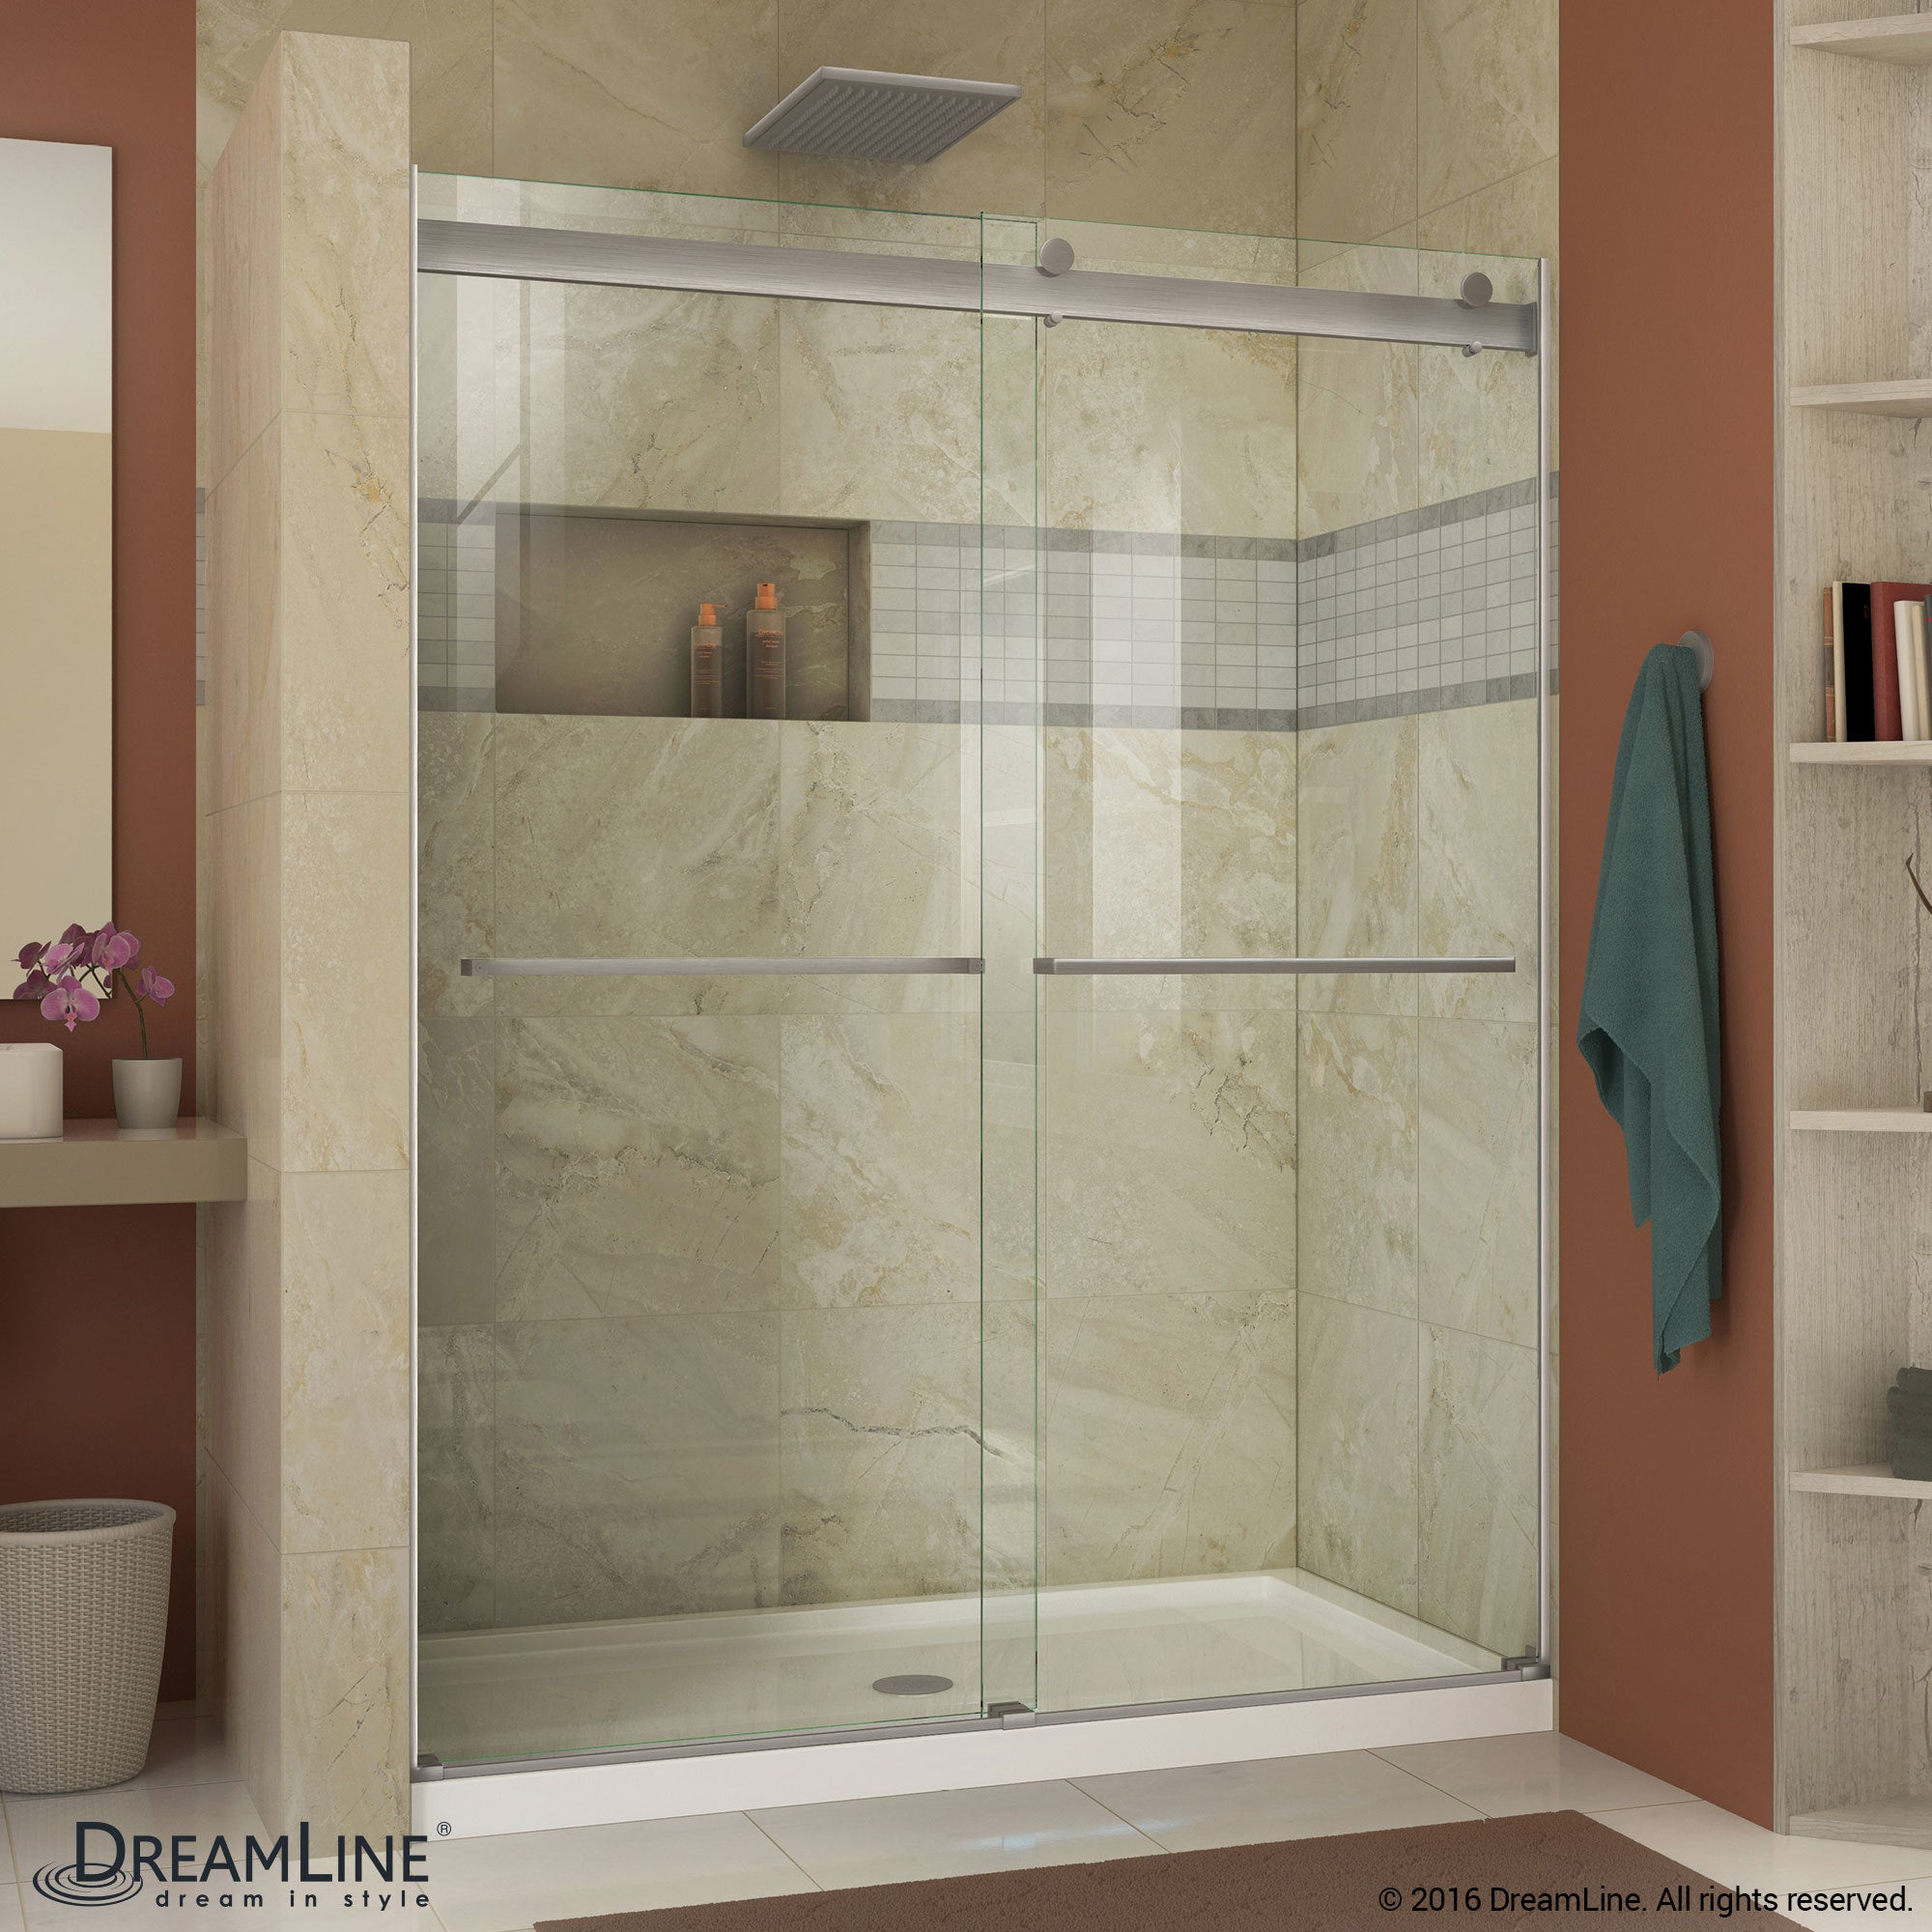 Frameless Bypass Shower Door - Free Shipping Today - Overstock.com - 19747226 & DreamLine Essence 56 to 60 in. Frameless Bypass Shower Door - Free ...